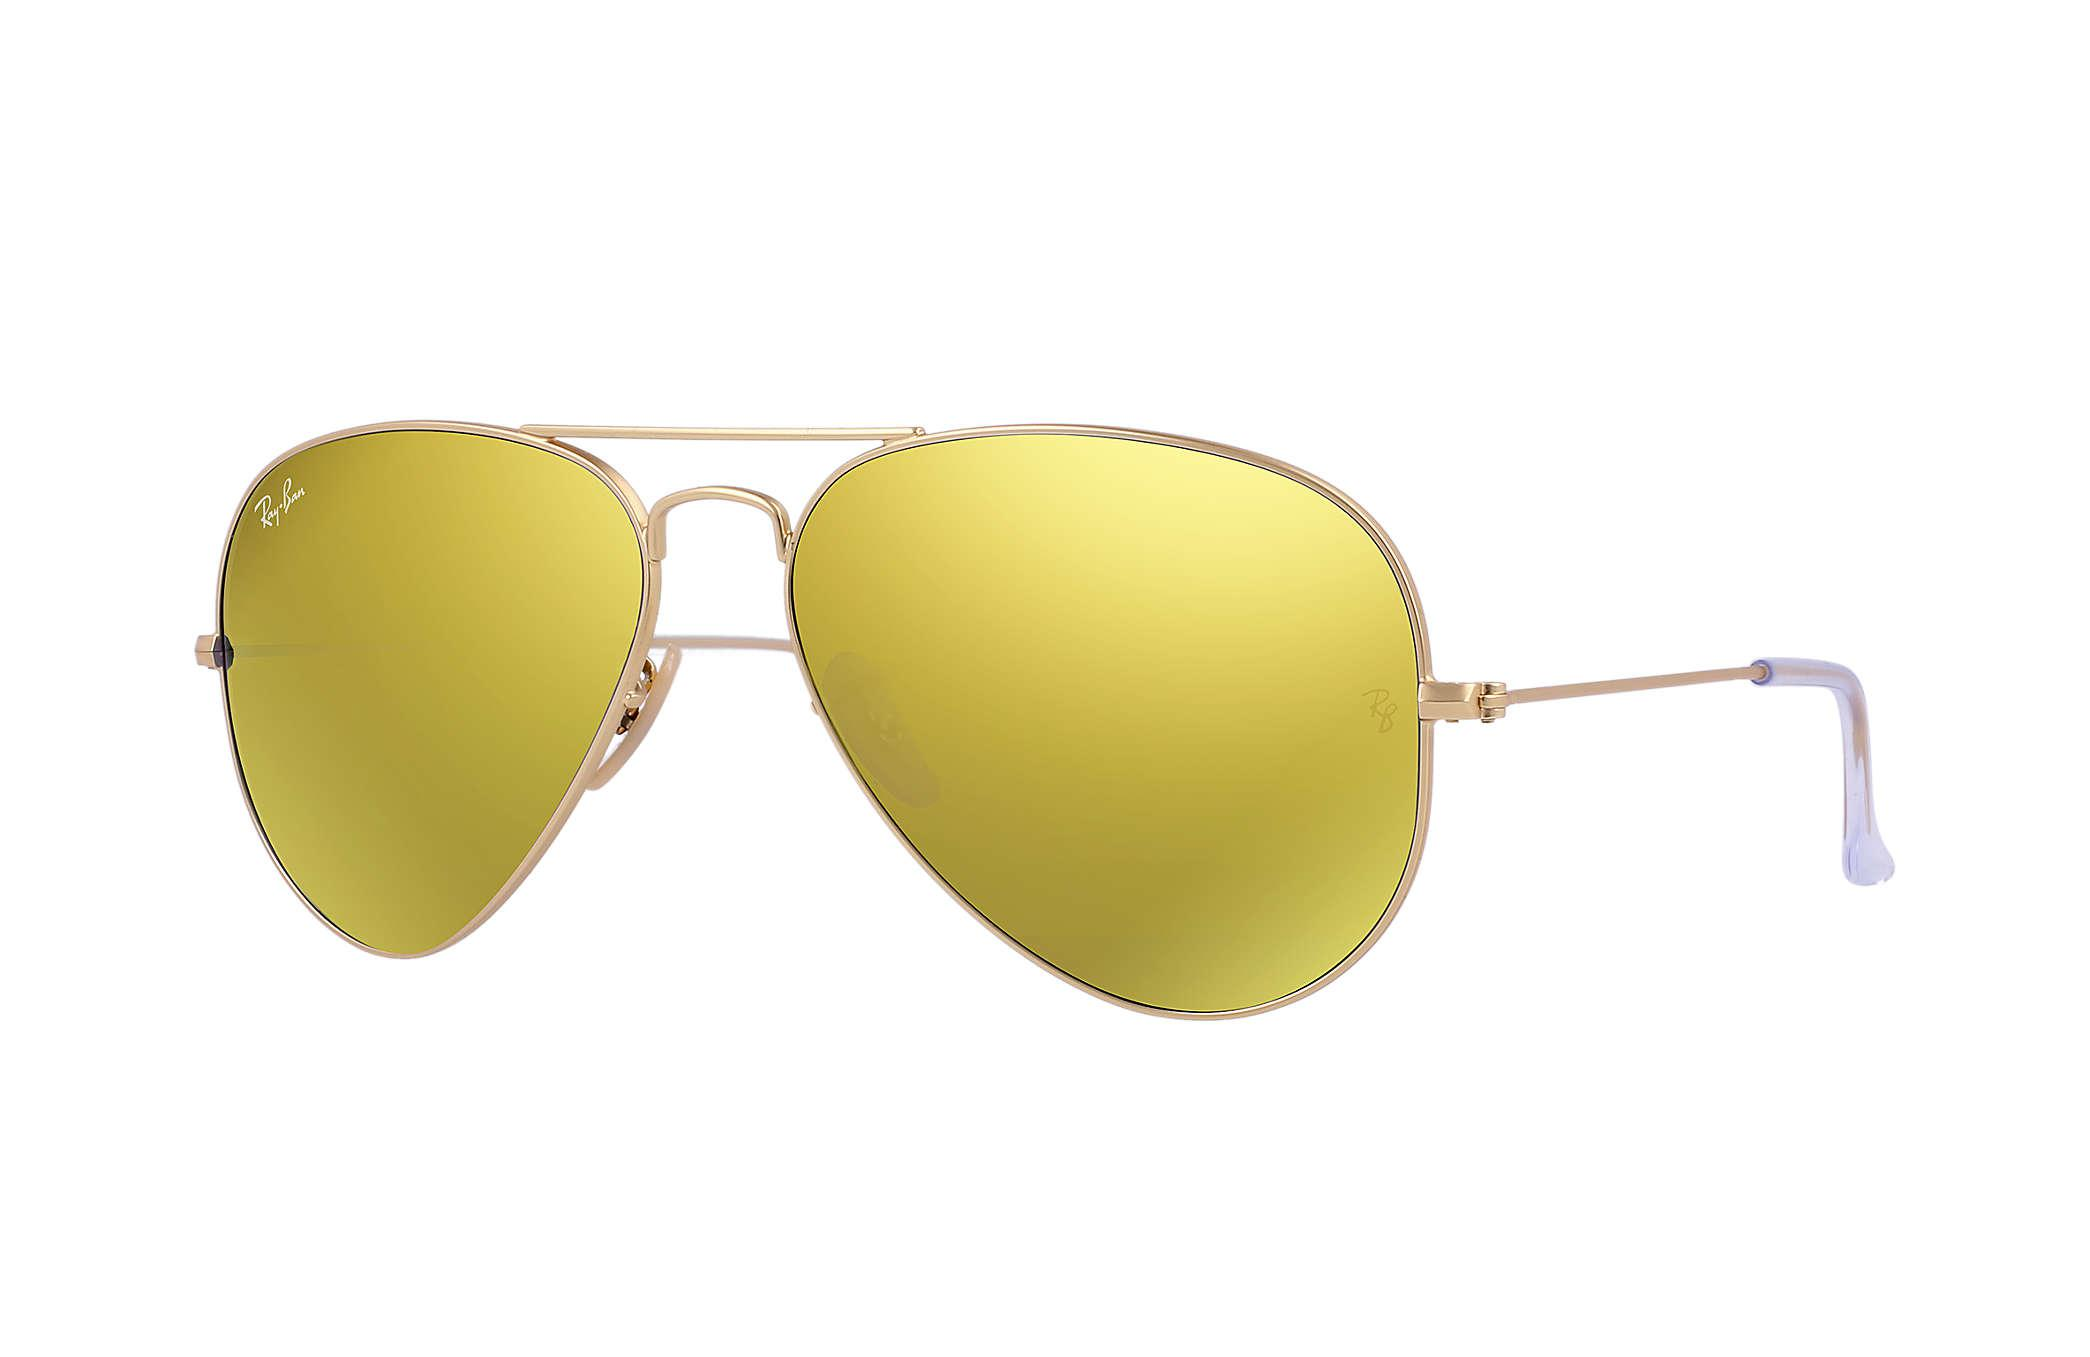 96d76efae78 Ray-Ban Aviator Flash Lenses in Yellow - Lyst